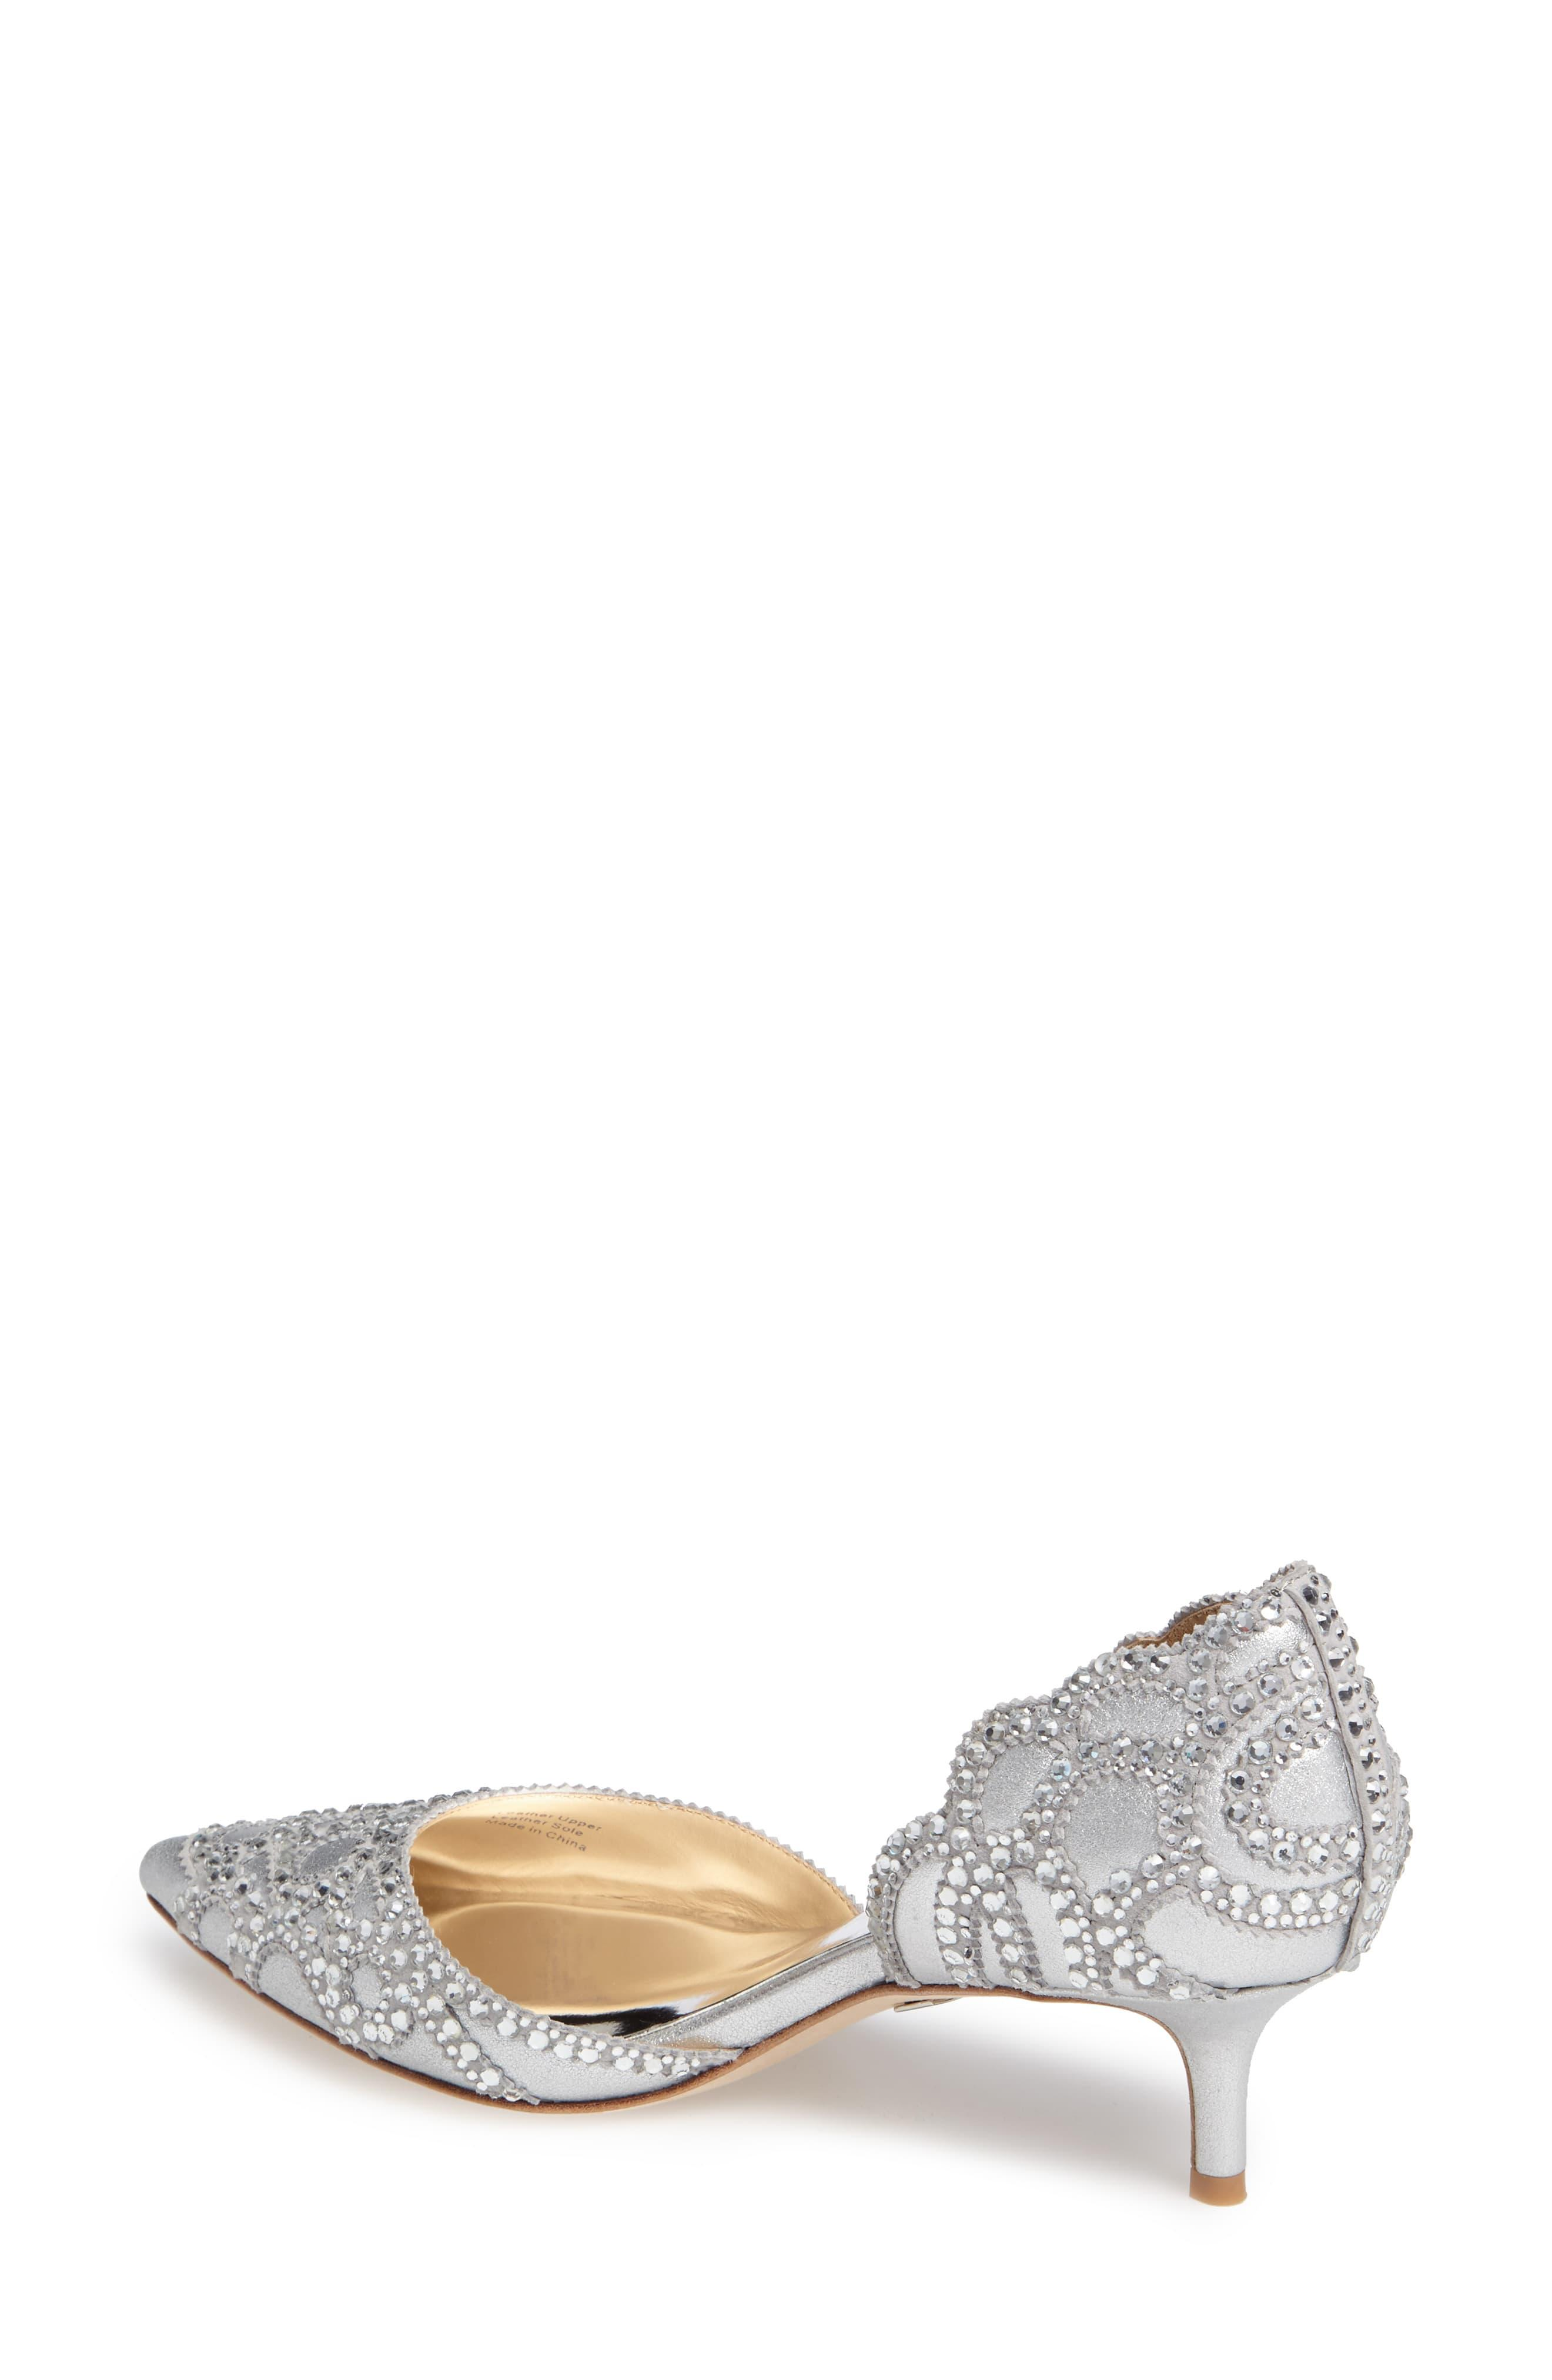 a1d6401f75 Badgley Mischka - Metallic Ginny Satin And Suede Jeweled D'orsay Pumps -  Lyst. View fullscreen